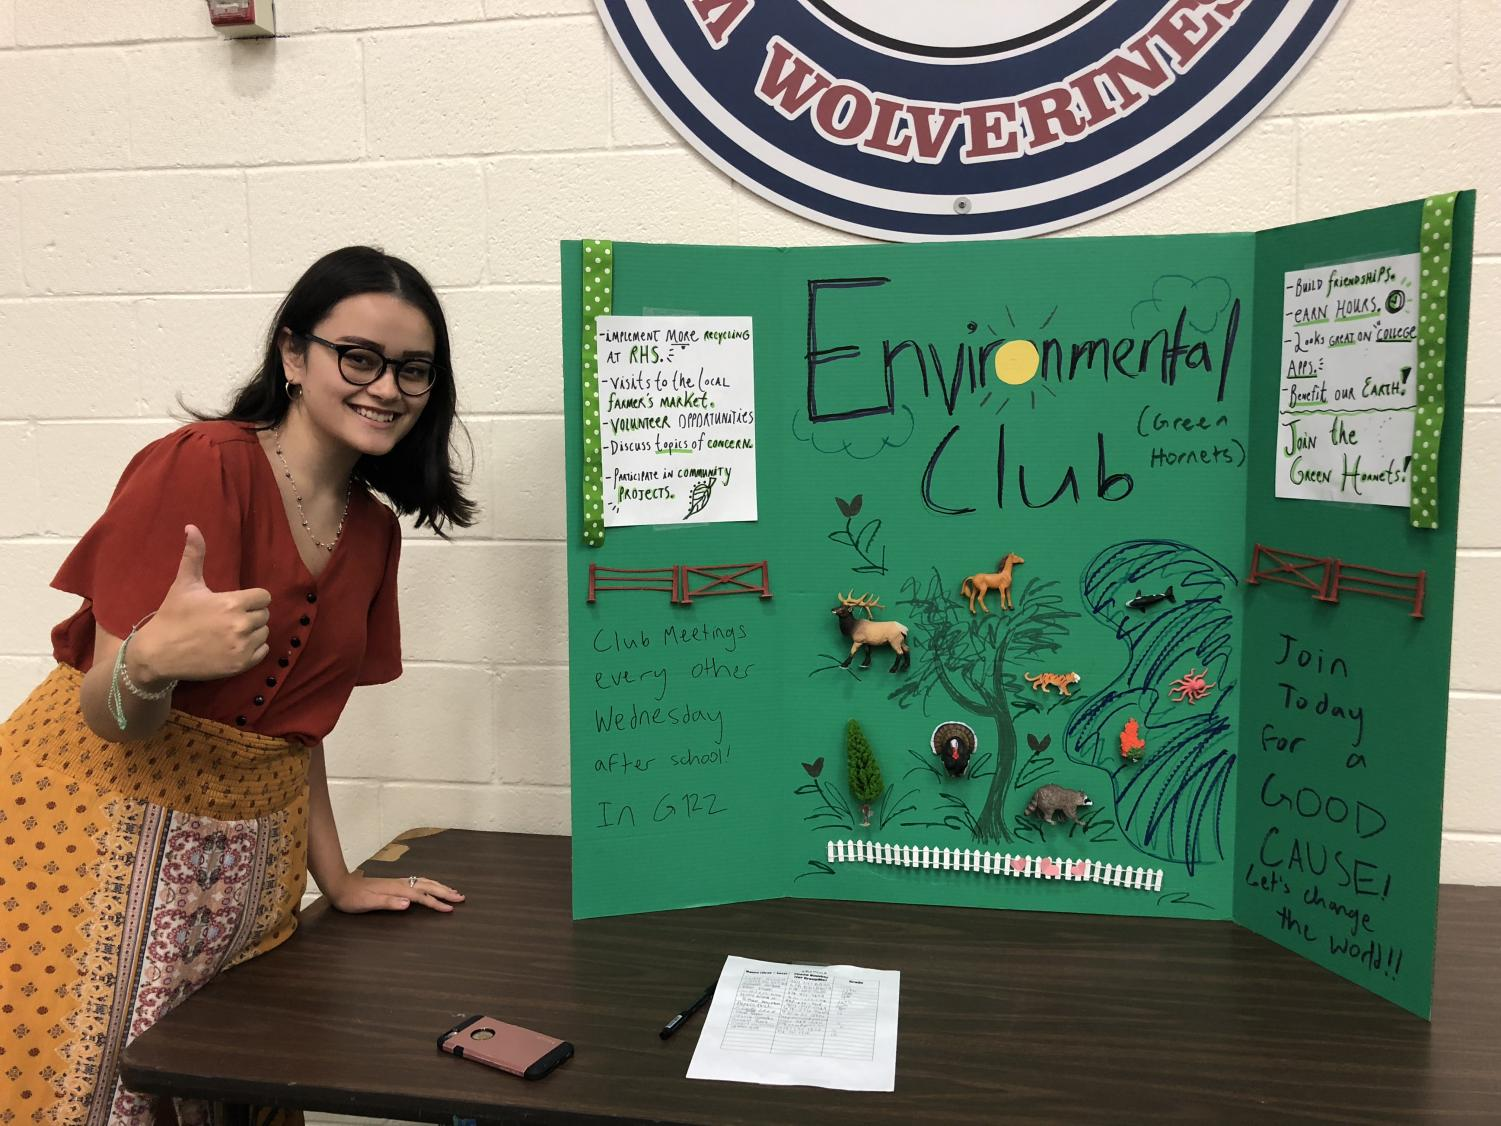 Senior Elisa Offer attracts new members at the Club Fair for the Environmental Club. Photo Credit: Smriti Tayal